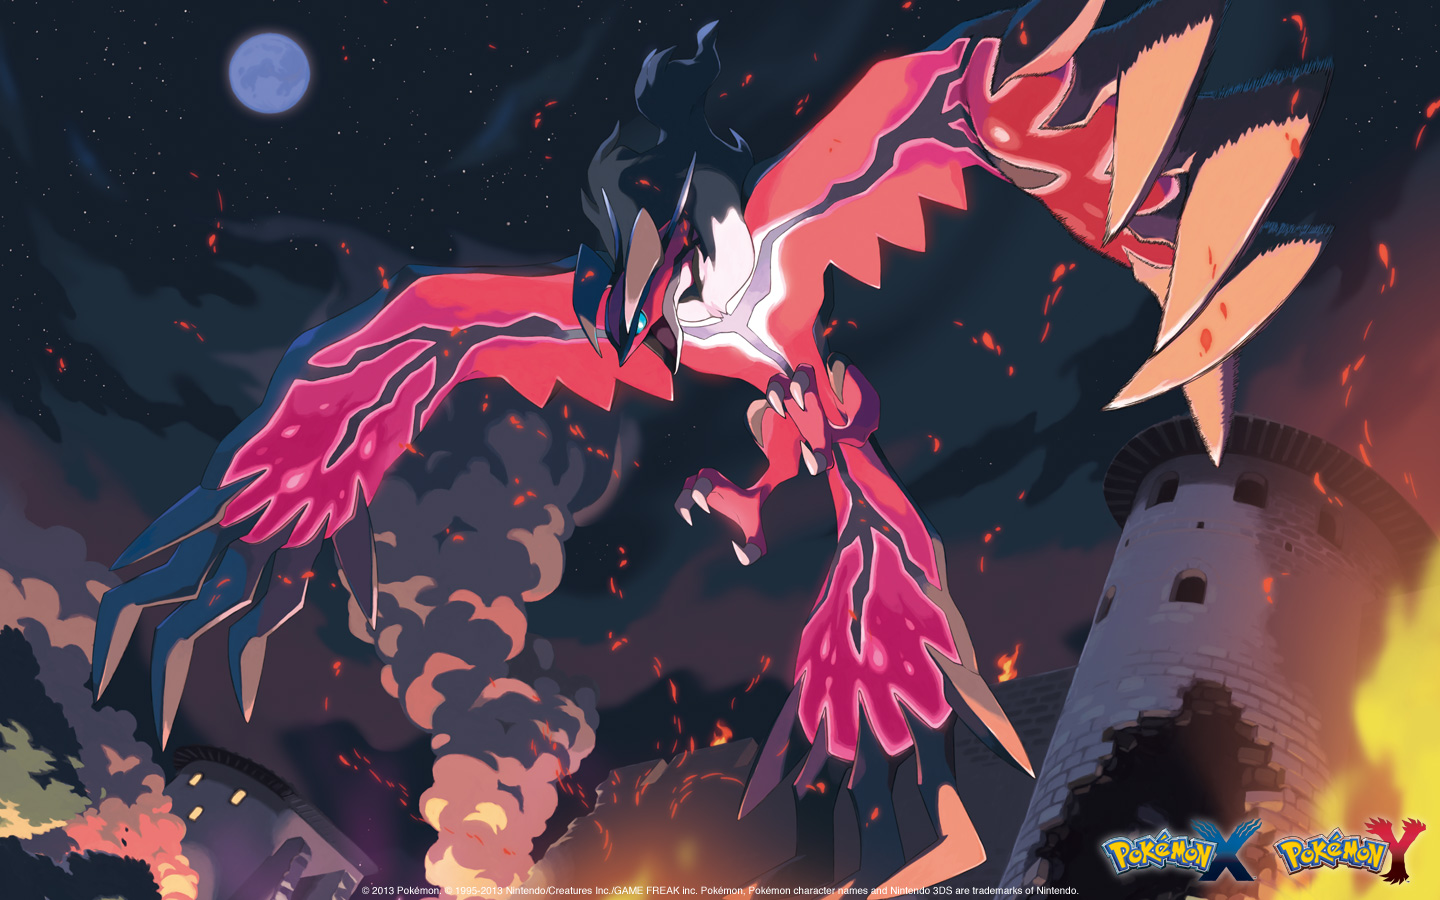 Wallpaper download pokemon - Pok Mon X And Pok Mon Y Yveltal Wallpaper